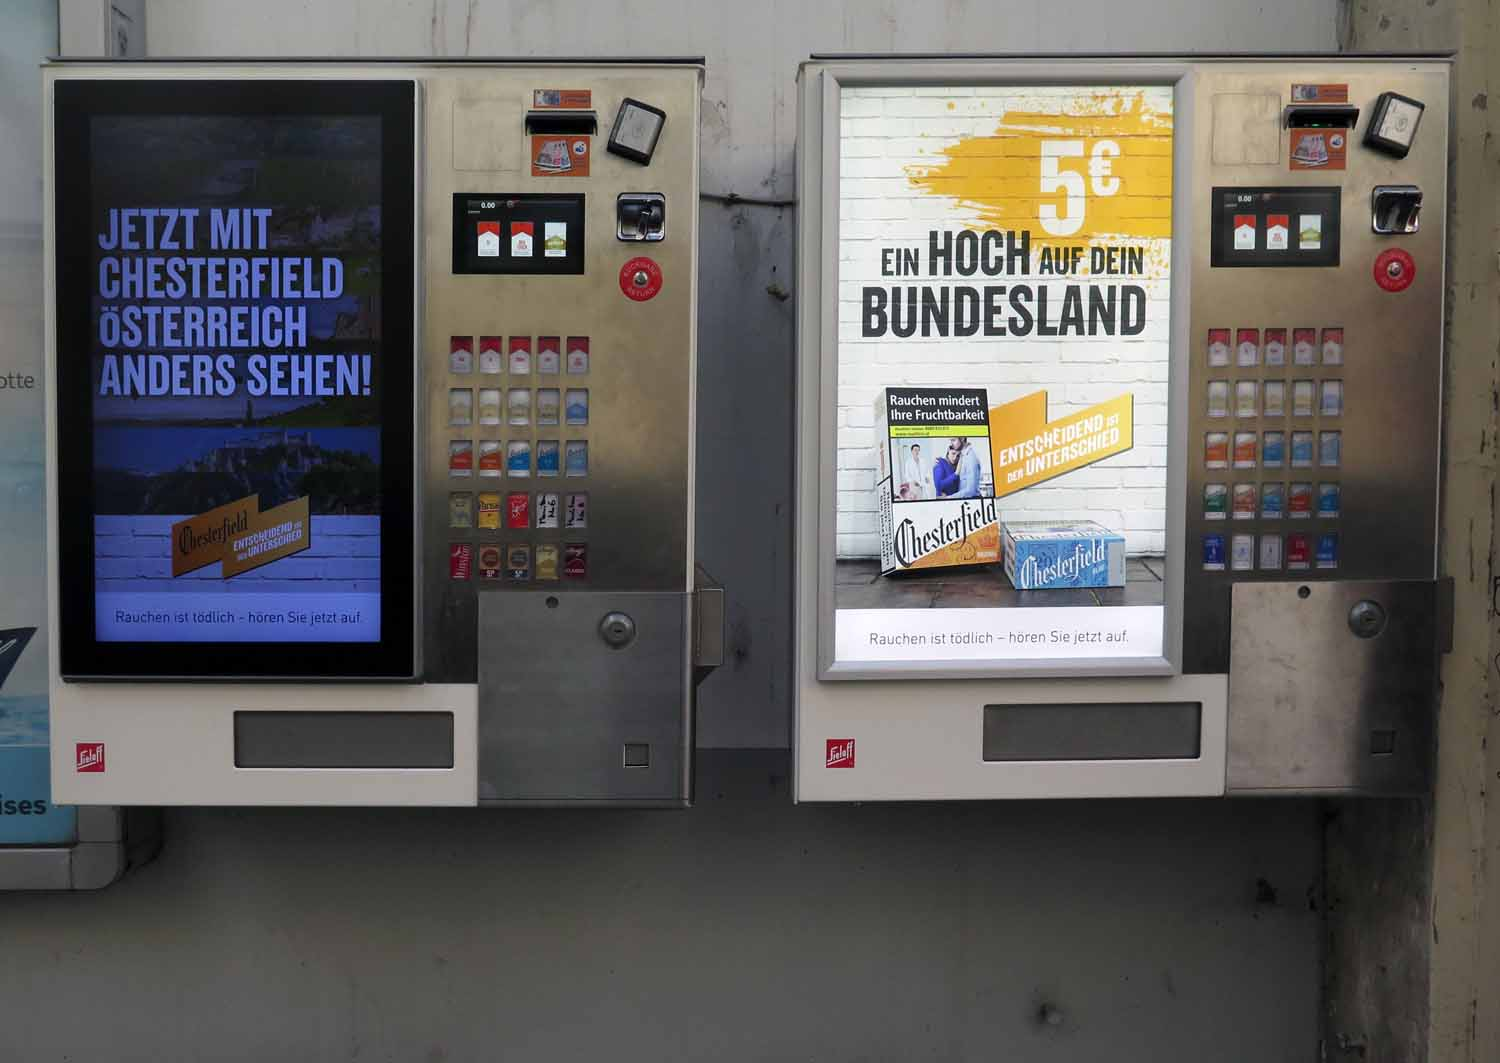 Austria-Vienna-Vending-Machine-Cigarettes